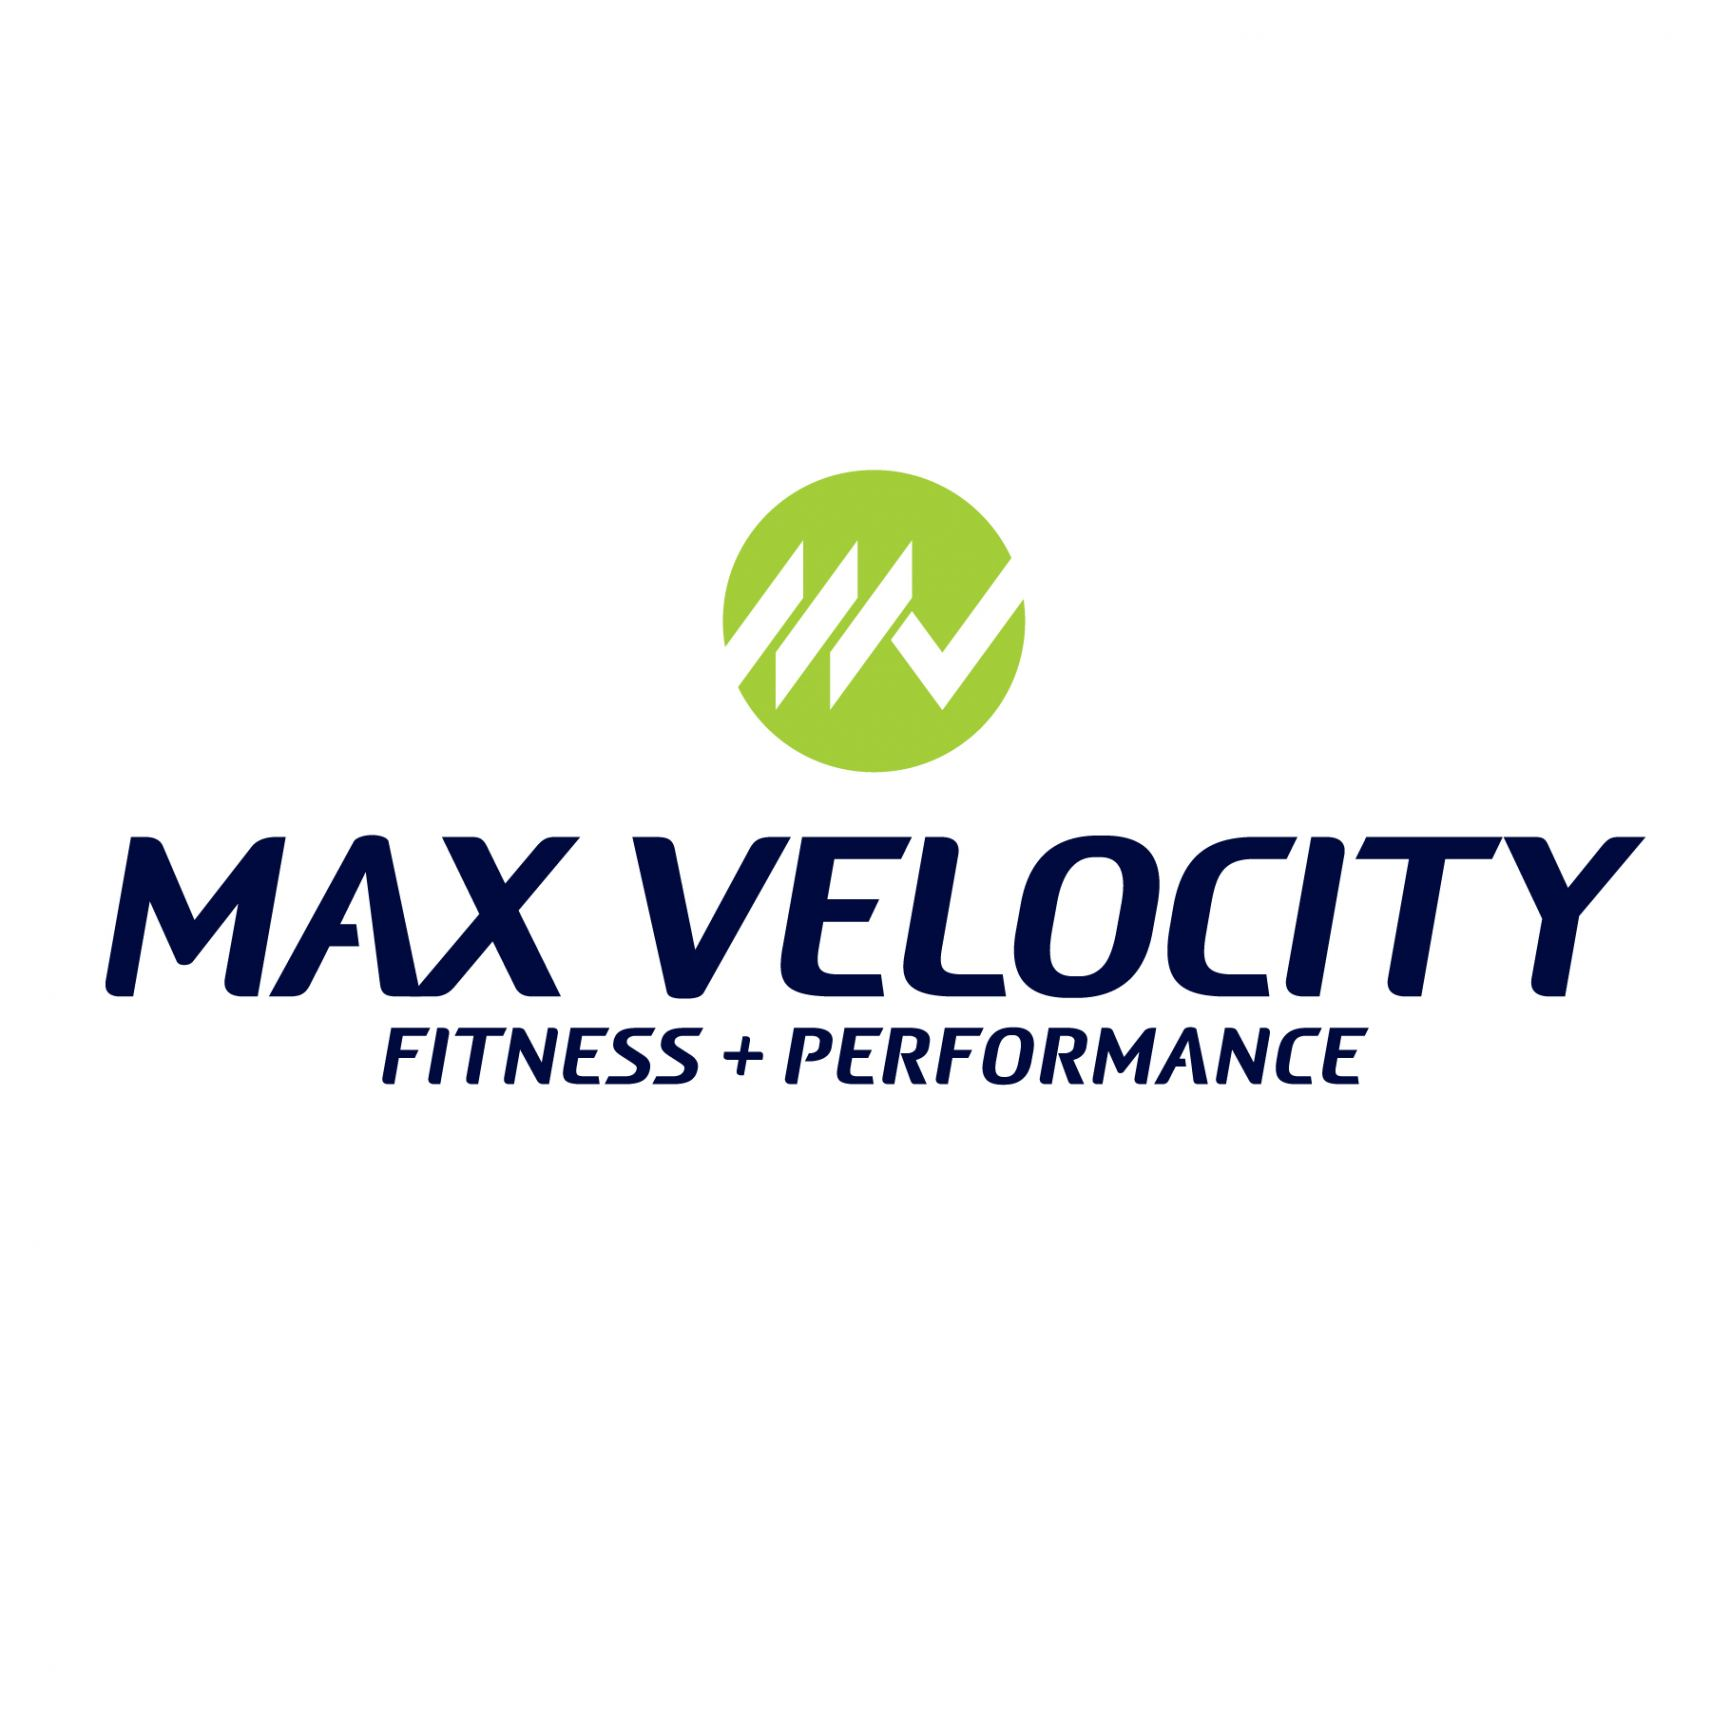 Max Velocity Fitness + Performance Logo